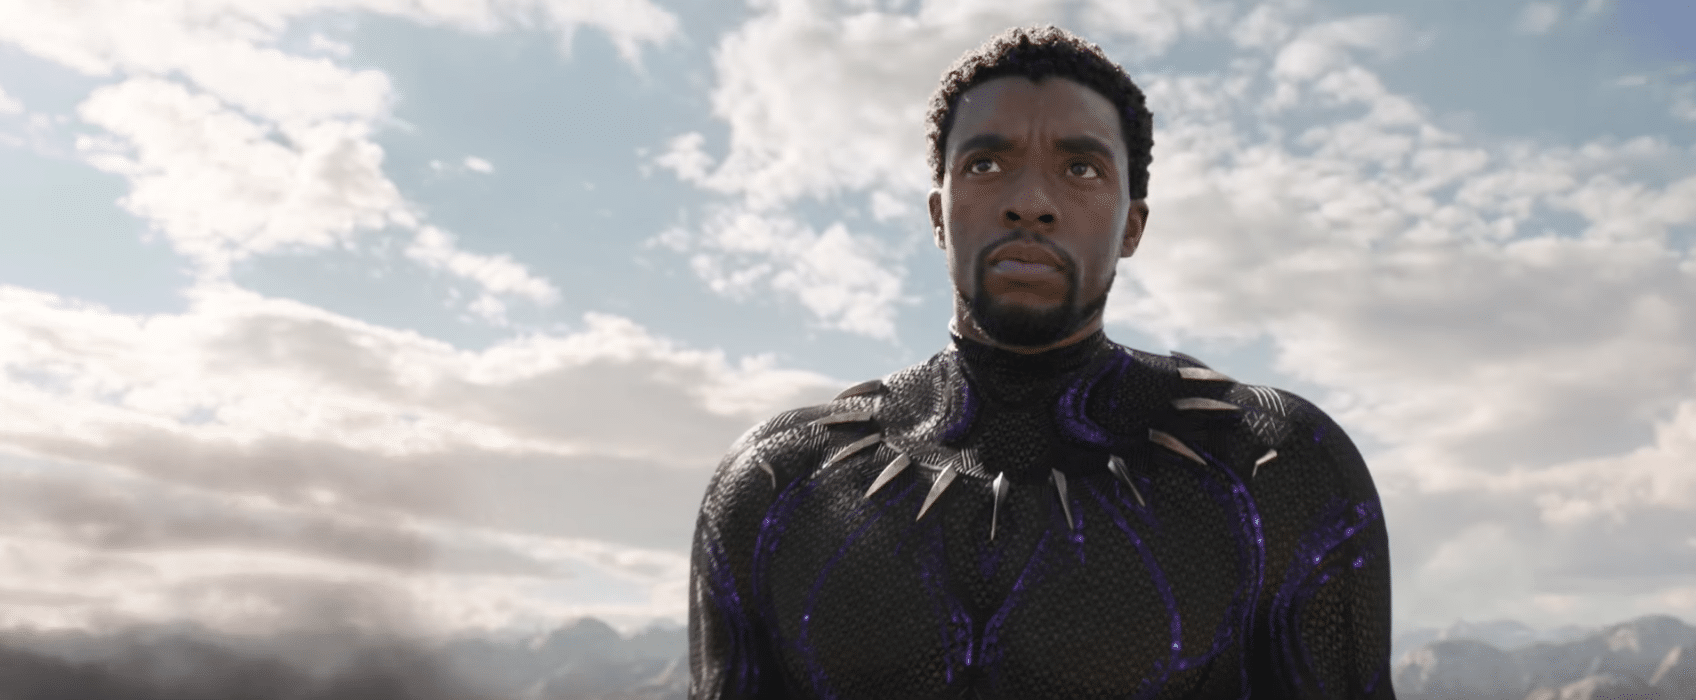 Marvel Studios' Black Panther now available on Digital, Movies Anywhere, Blu-ray & 4K